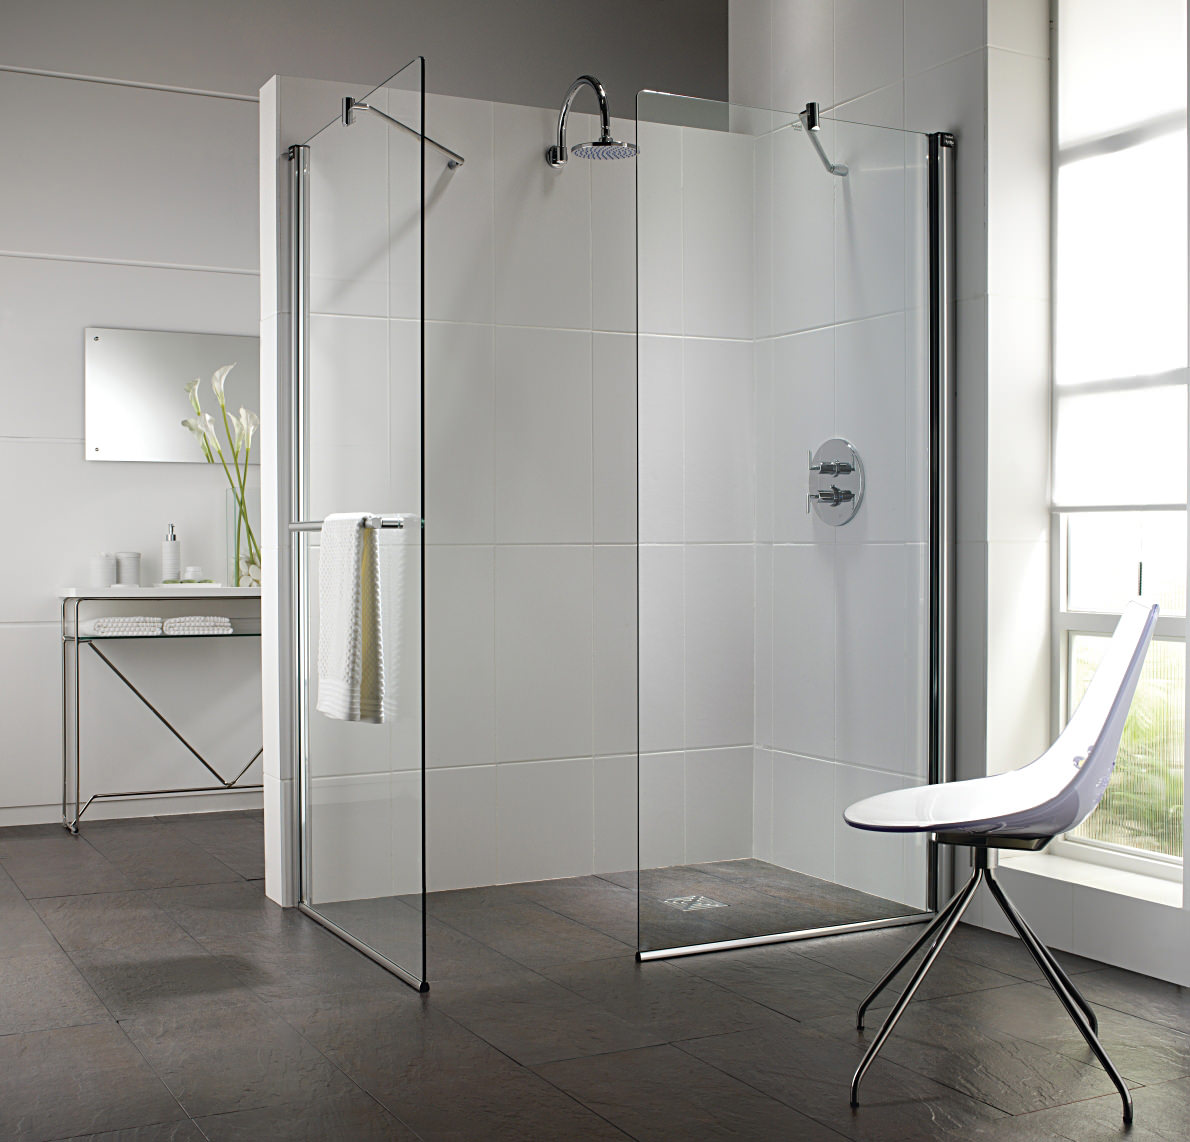 Twyford hydr8 walk in flat glass shower panel 900mm h85950cp